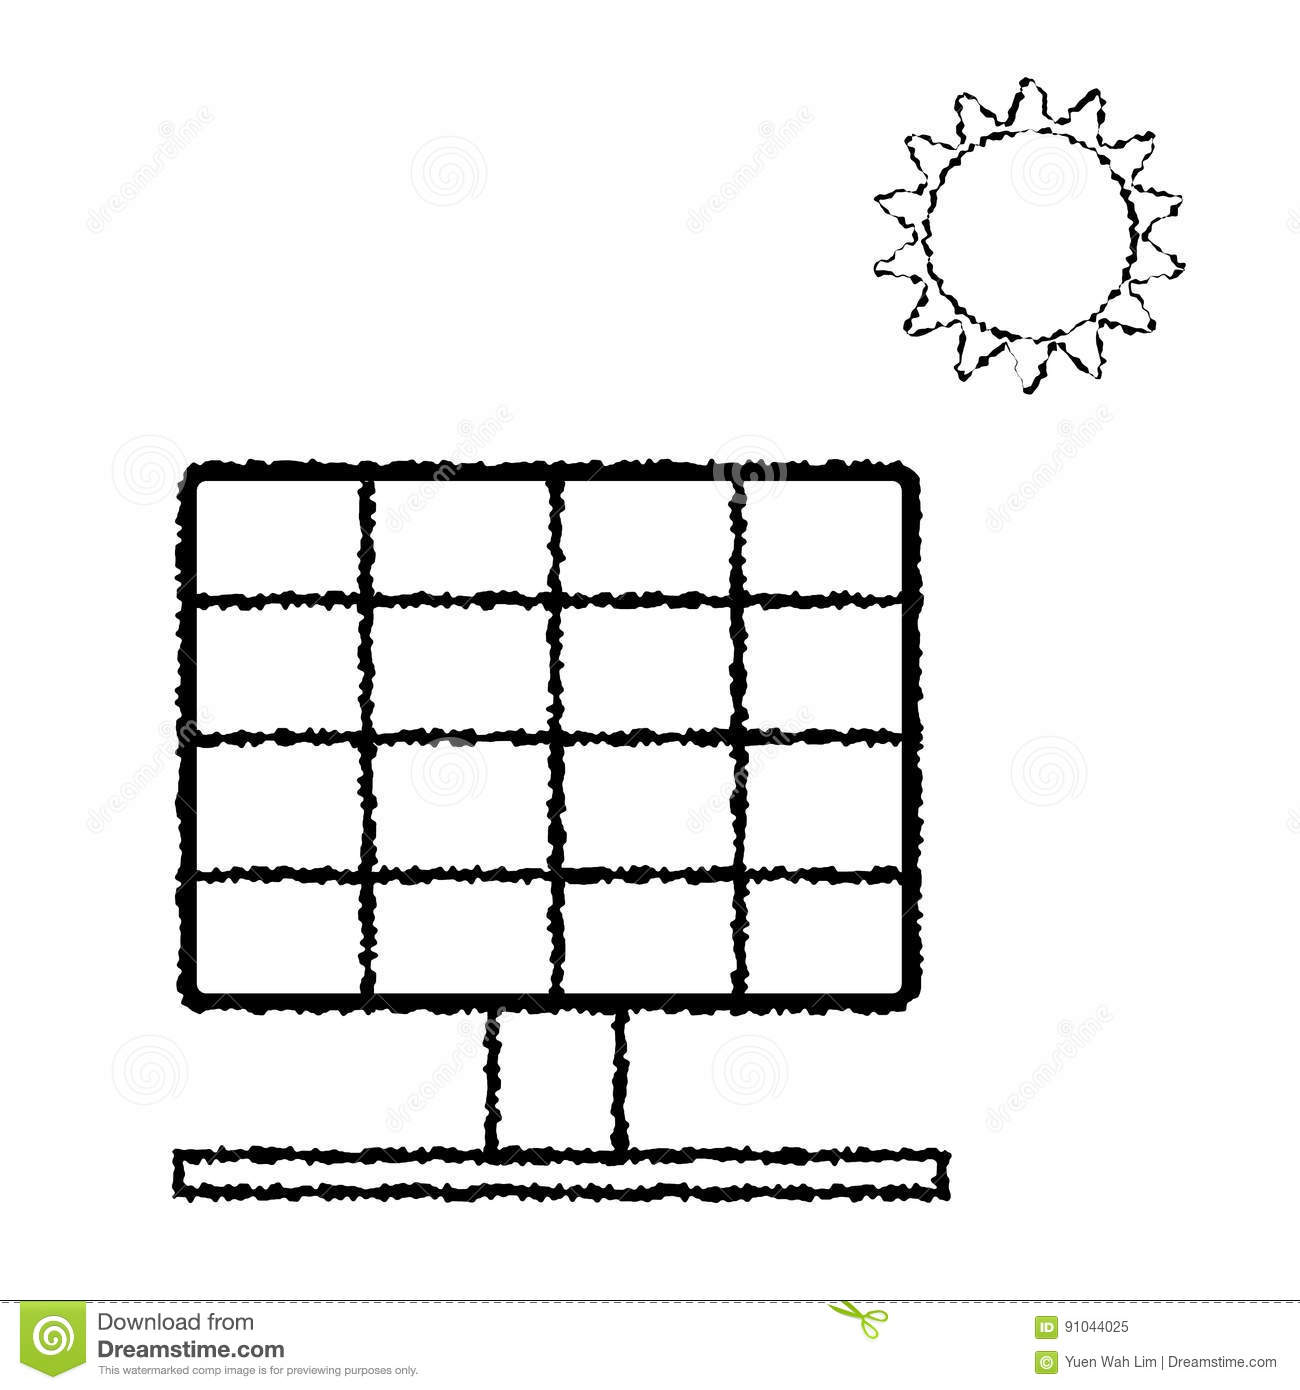 Black And White Solar Panel Diagram Electrical Wiring Diagrams Solarpaneldiagram Vector Of Doodle Eps8 Stock Box